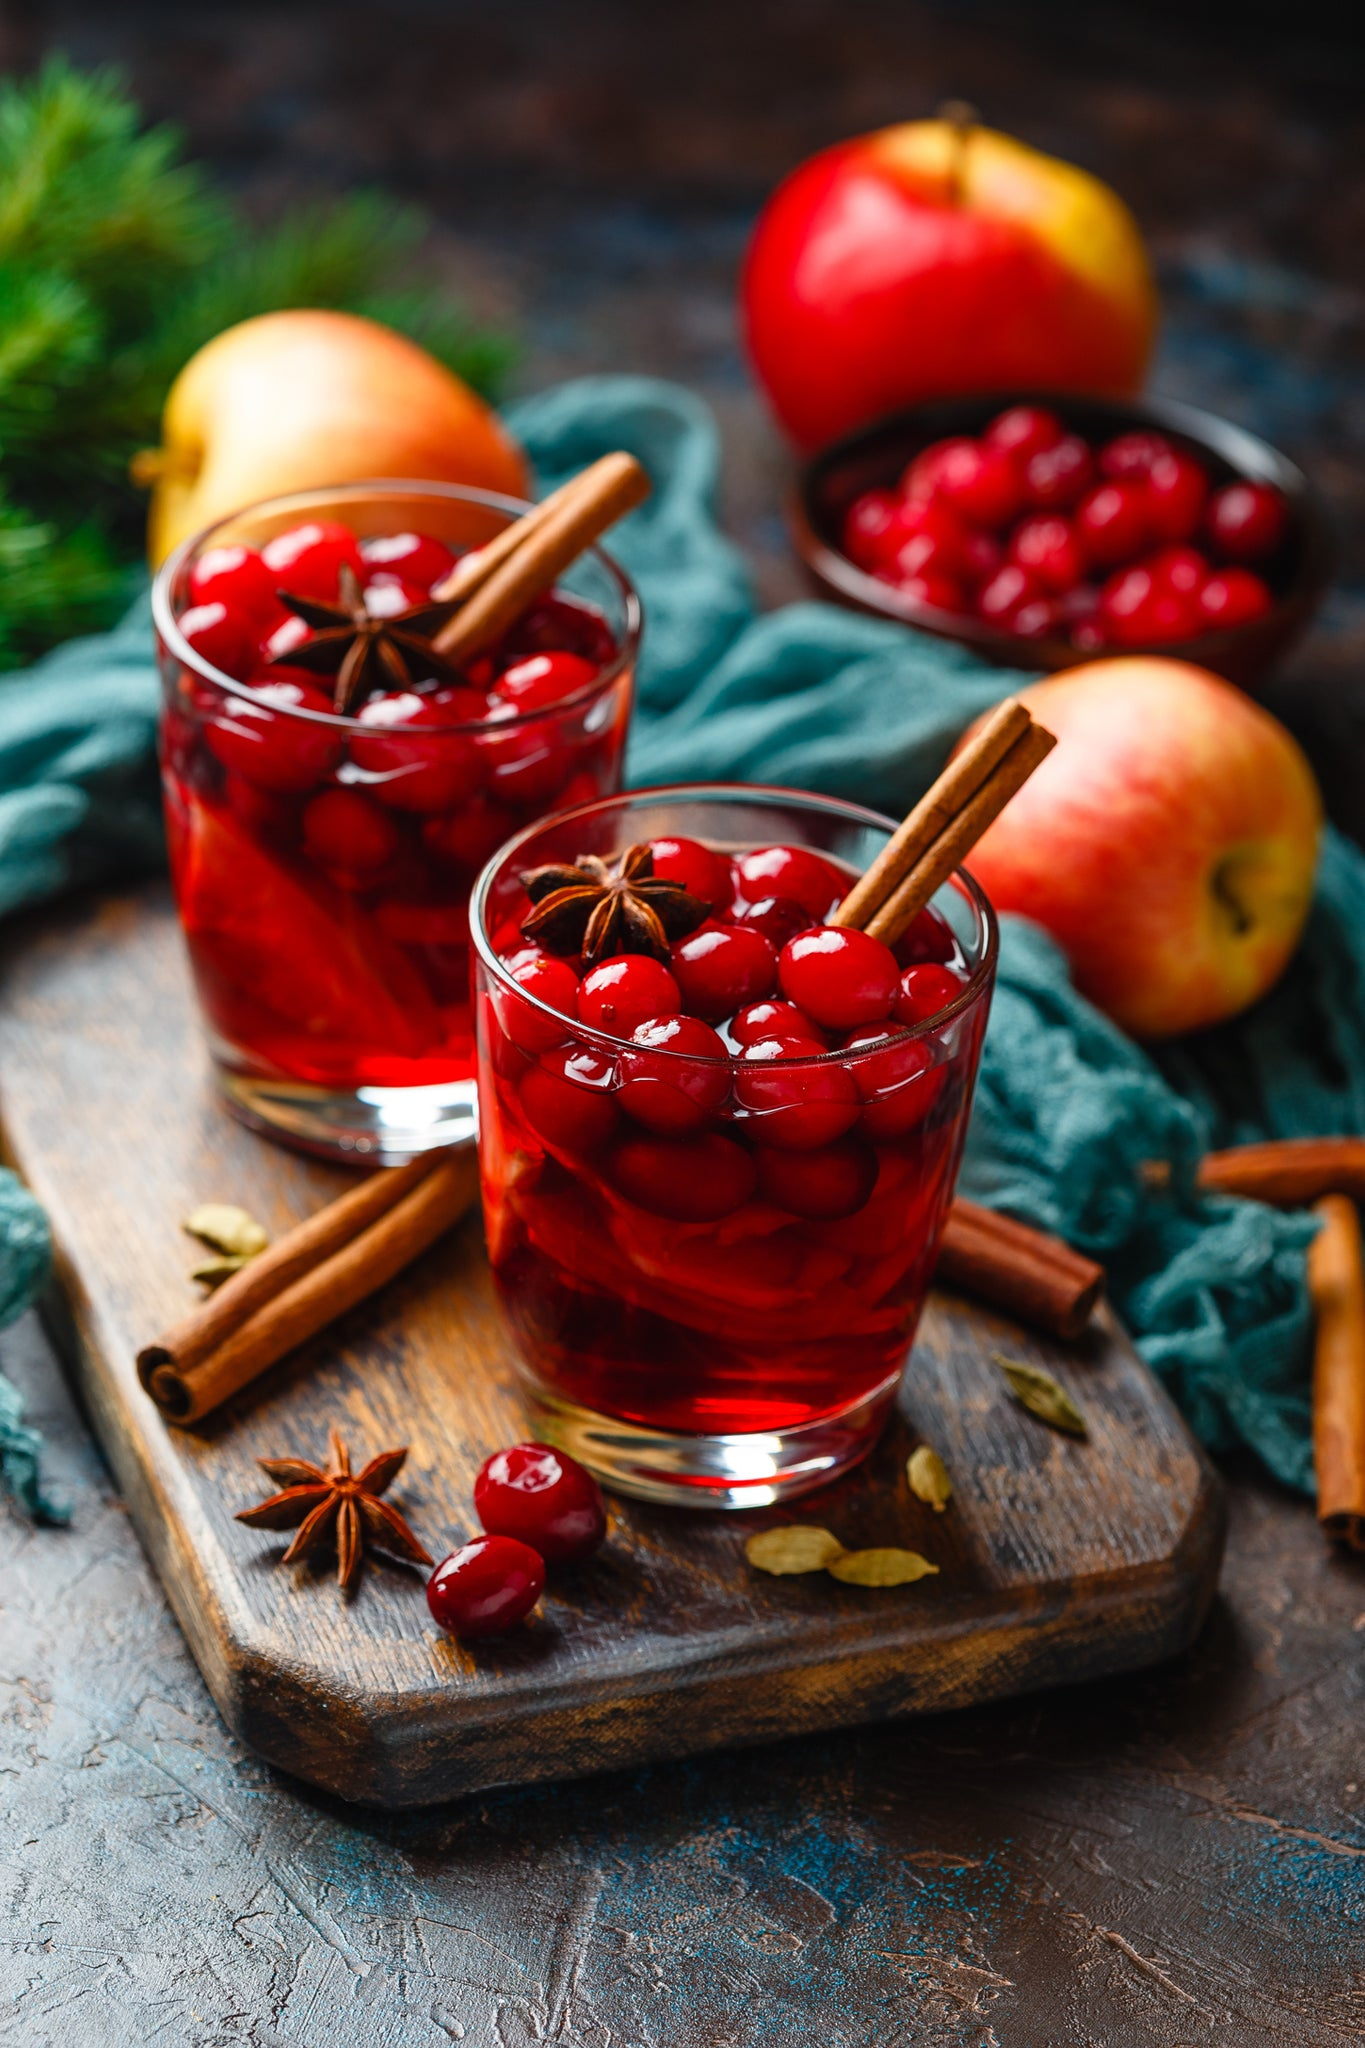 Appleberry gluhwein with cranberries